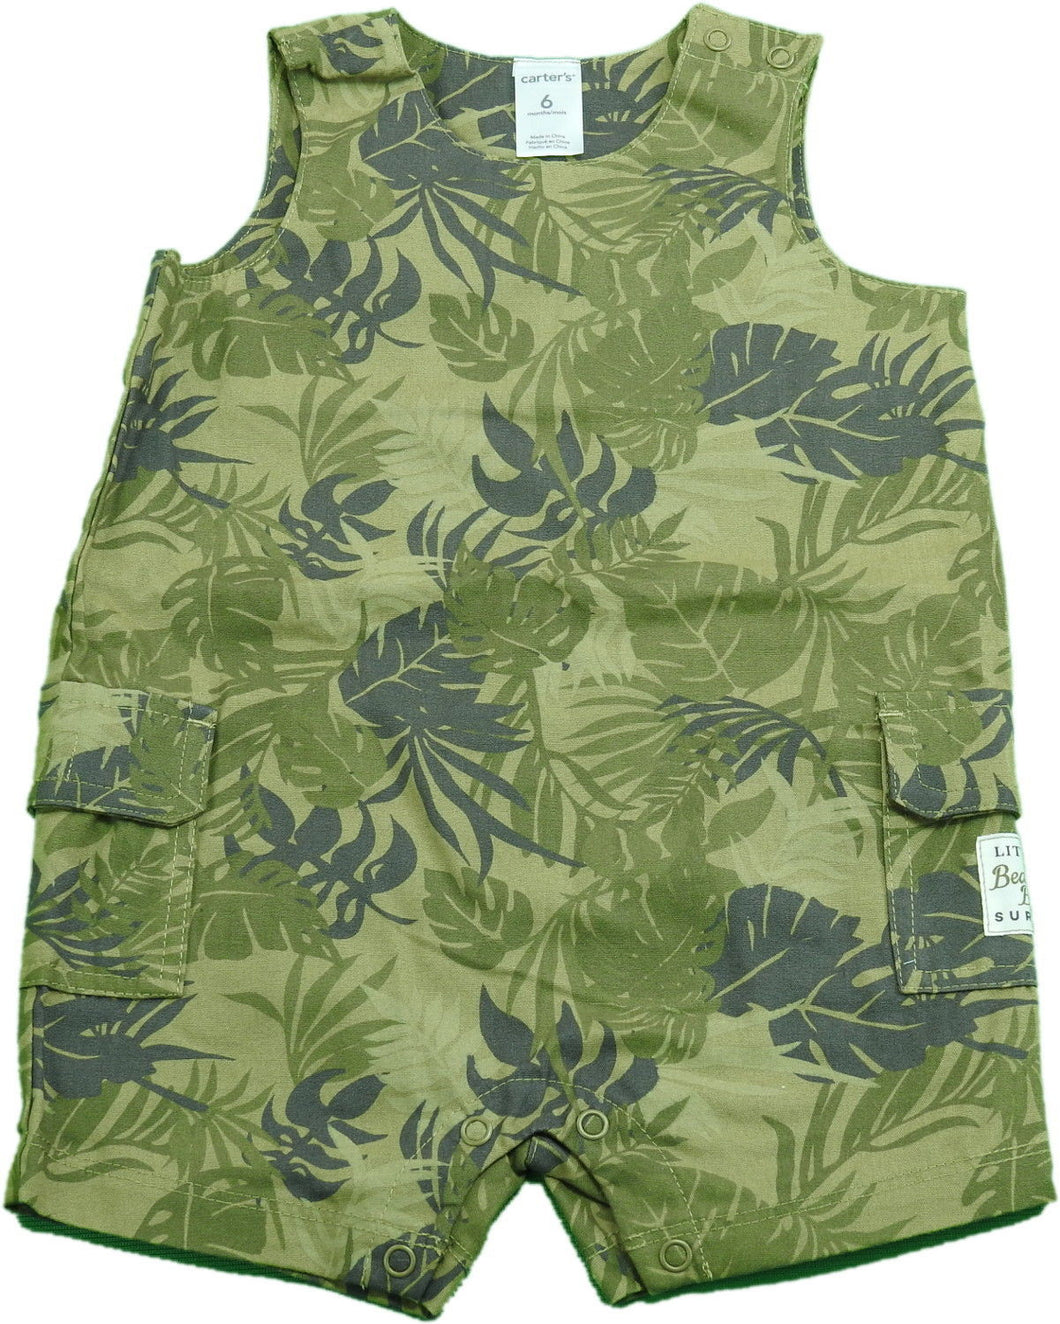 Carters Baby Boys 1-Pc Sleeveless Romper Shorts, Green/Camo